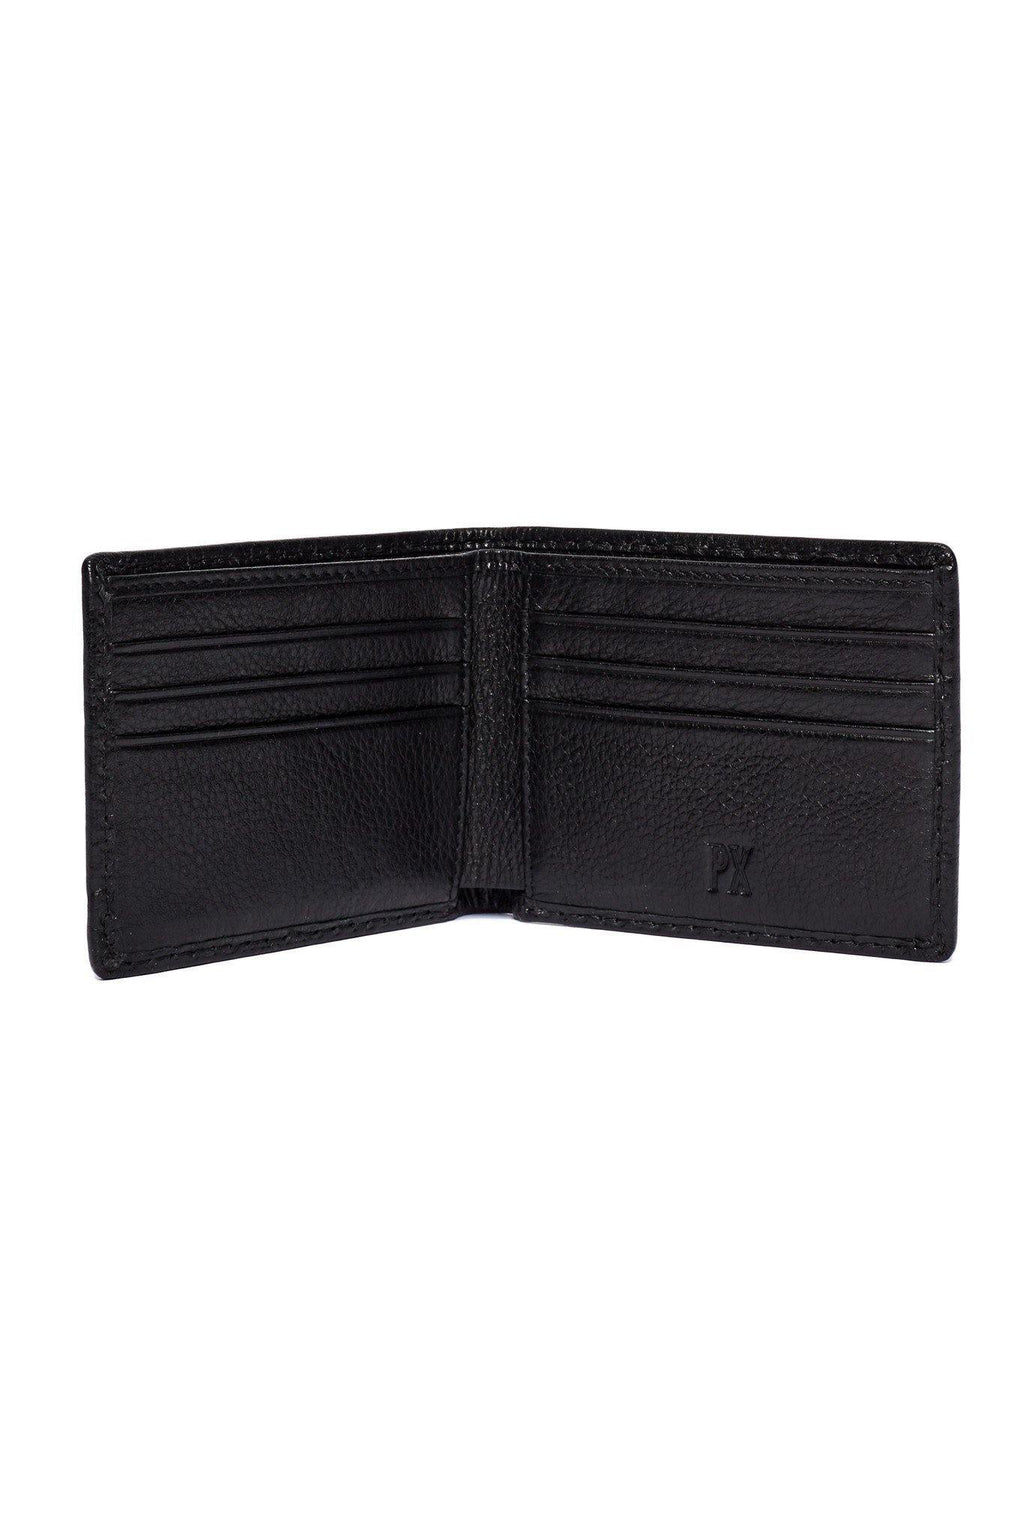 Bi-Fold Wallet Leather Wallet - Ayes - The Gallant Way